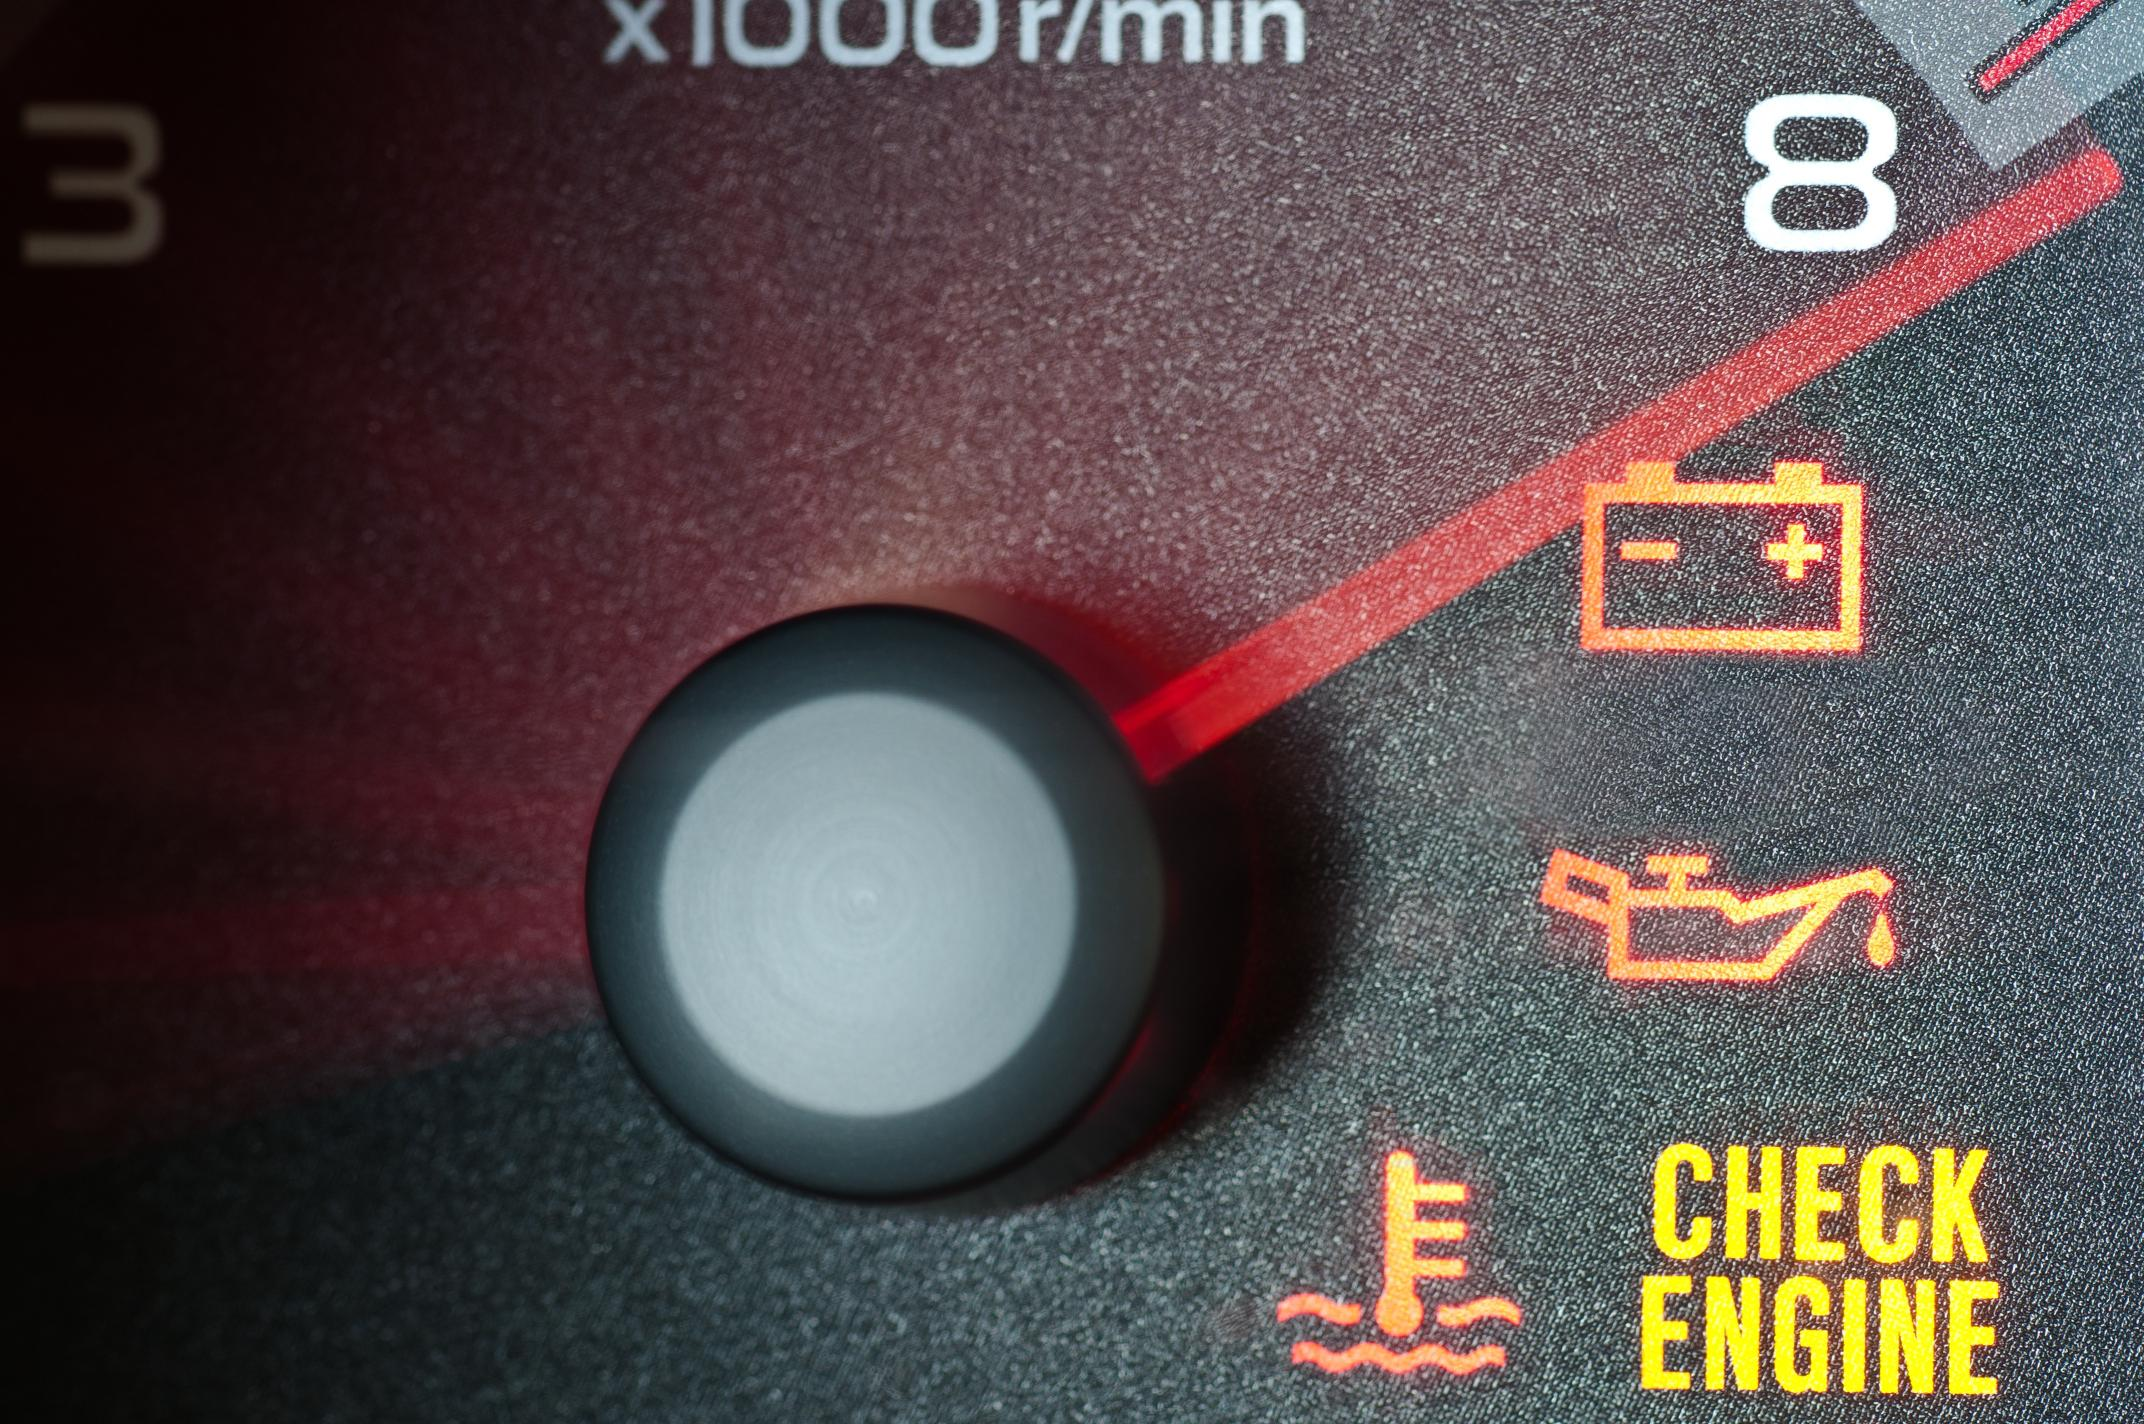 Engine fluids can thicken when the temperature drops